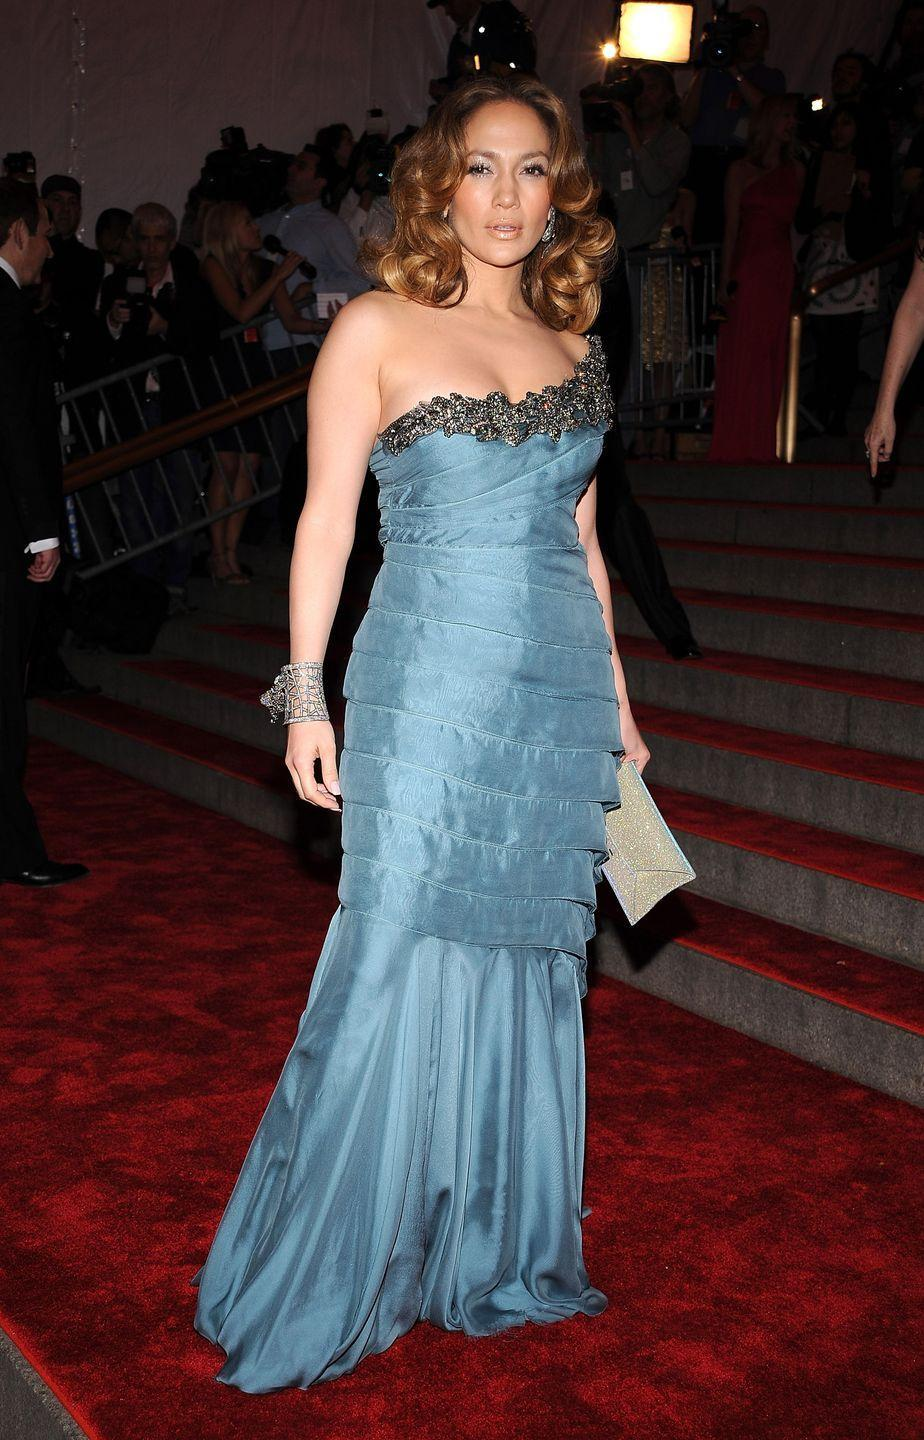 <p>Can we just take a moment to take in how much Met Gala fashion has changed?! Here, J.Lo wears a tiered, one-shoulder Armani dress with a bejeweled neckline and a statement bangle.</p>